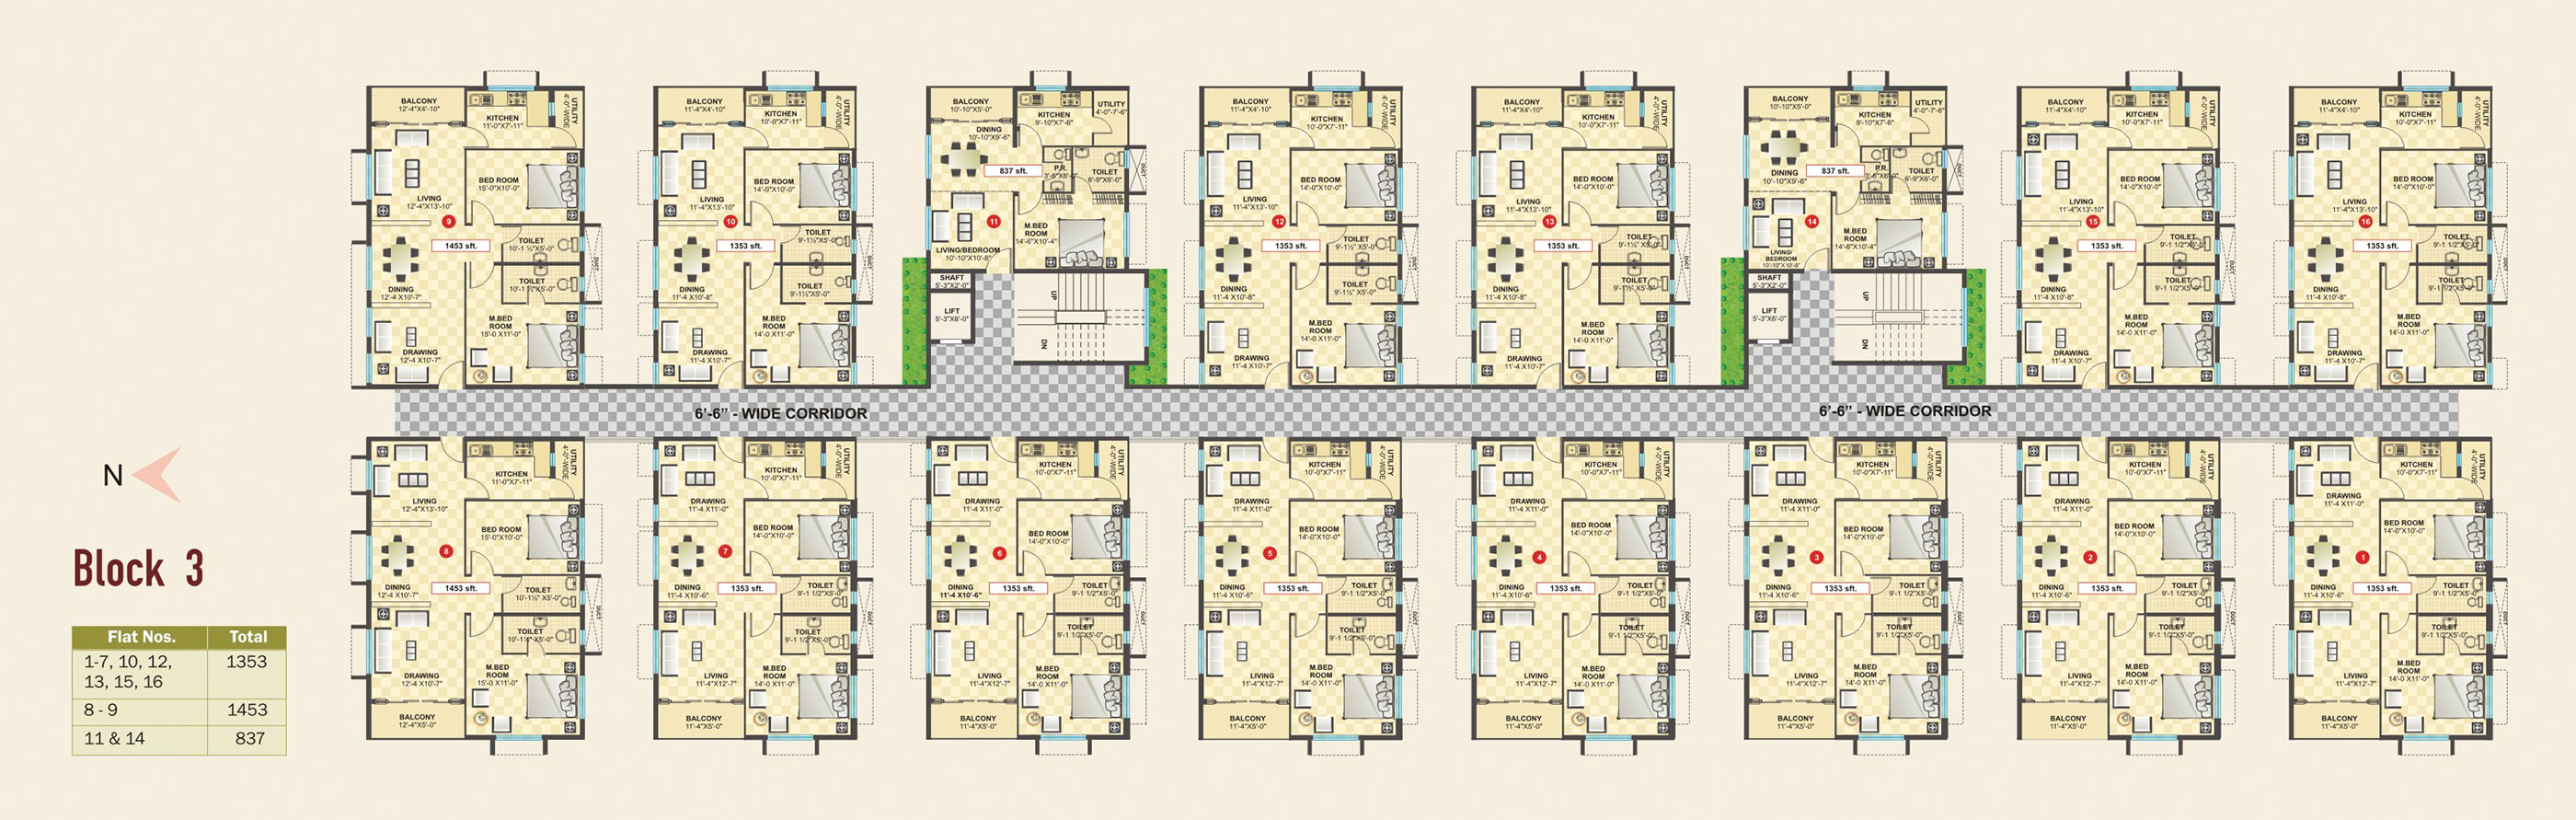 floor plans fort free home design ideas images chicago hilton floor plan modern home design and